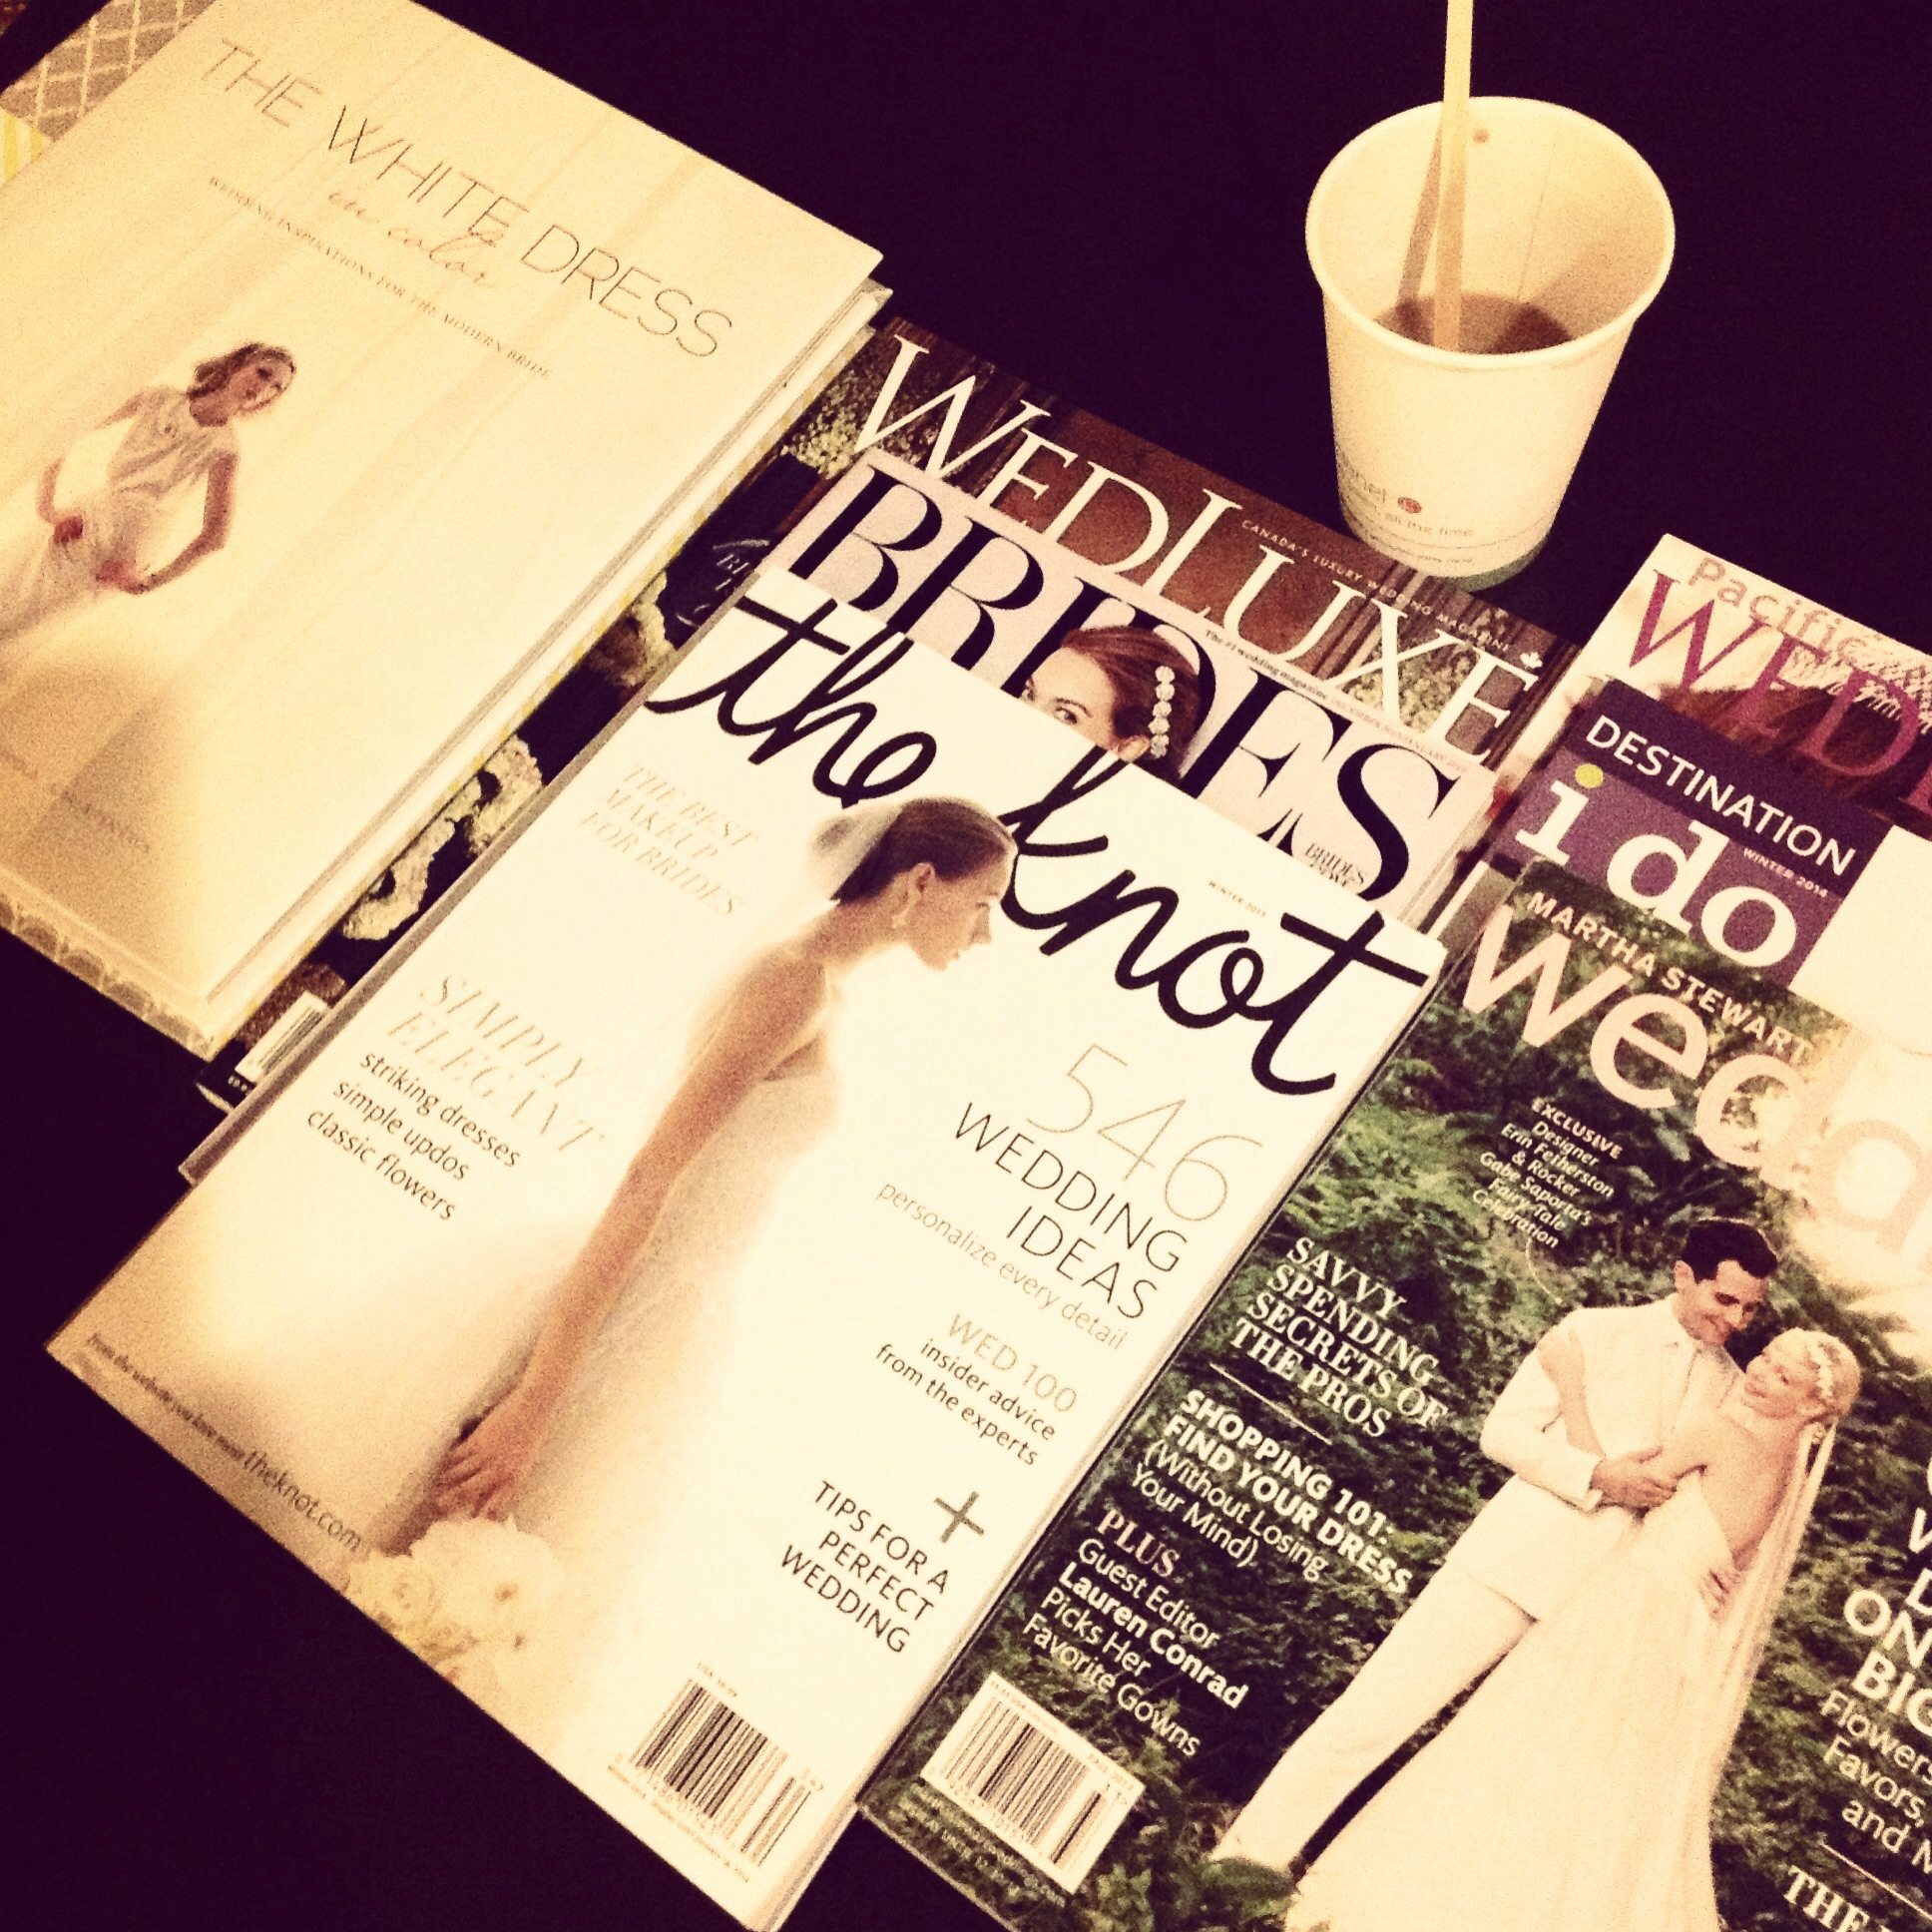 Just a little light reading - All the best wedding planning magazines!